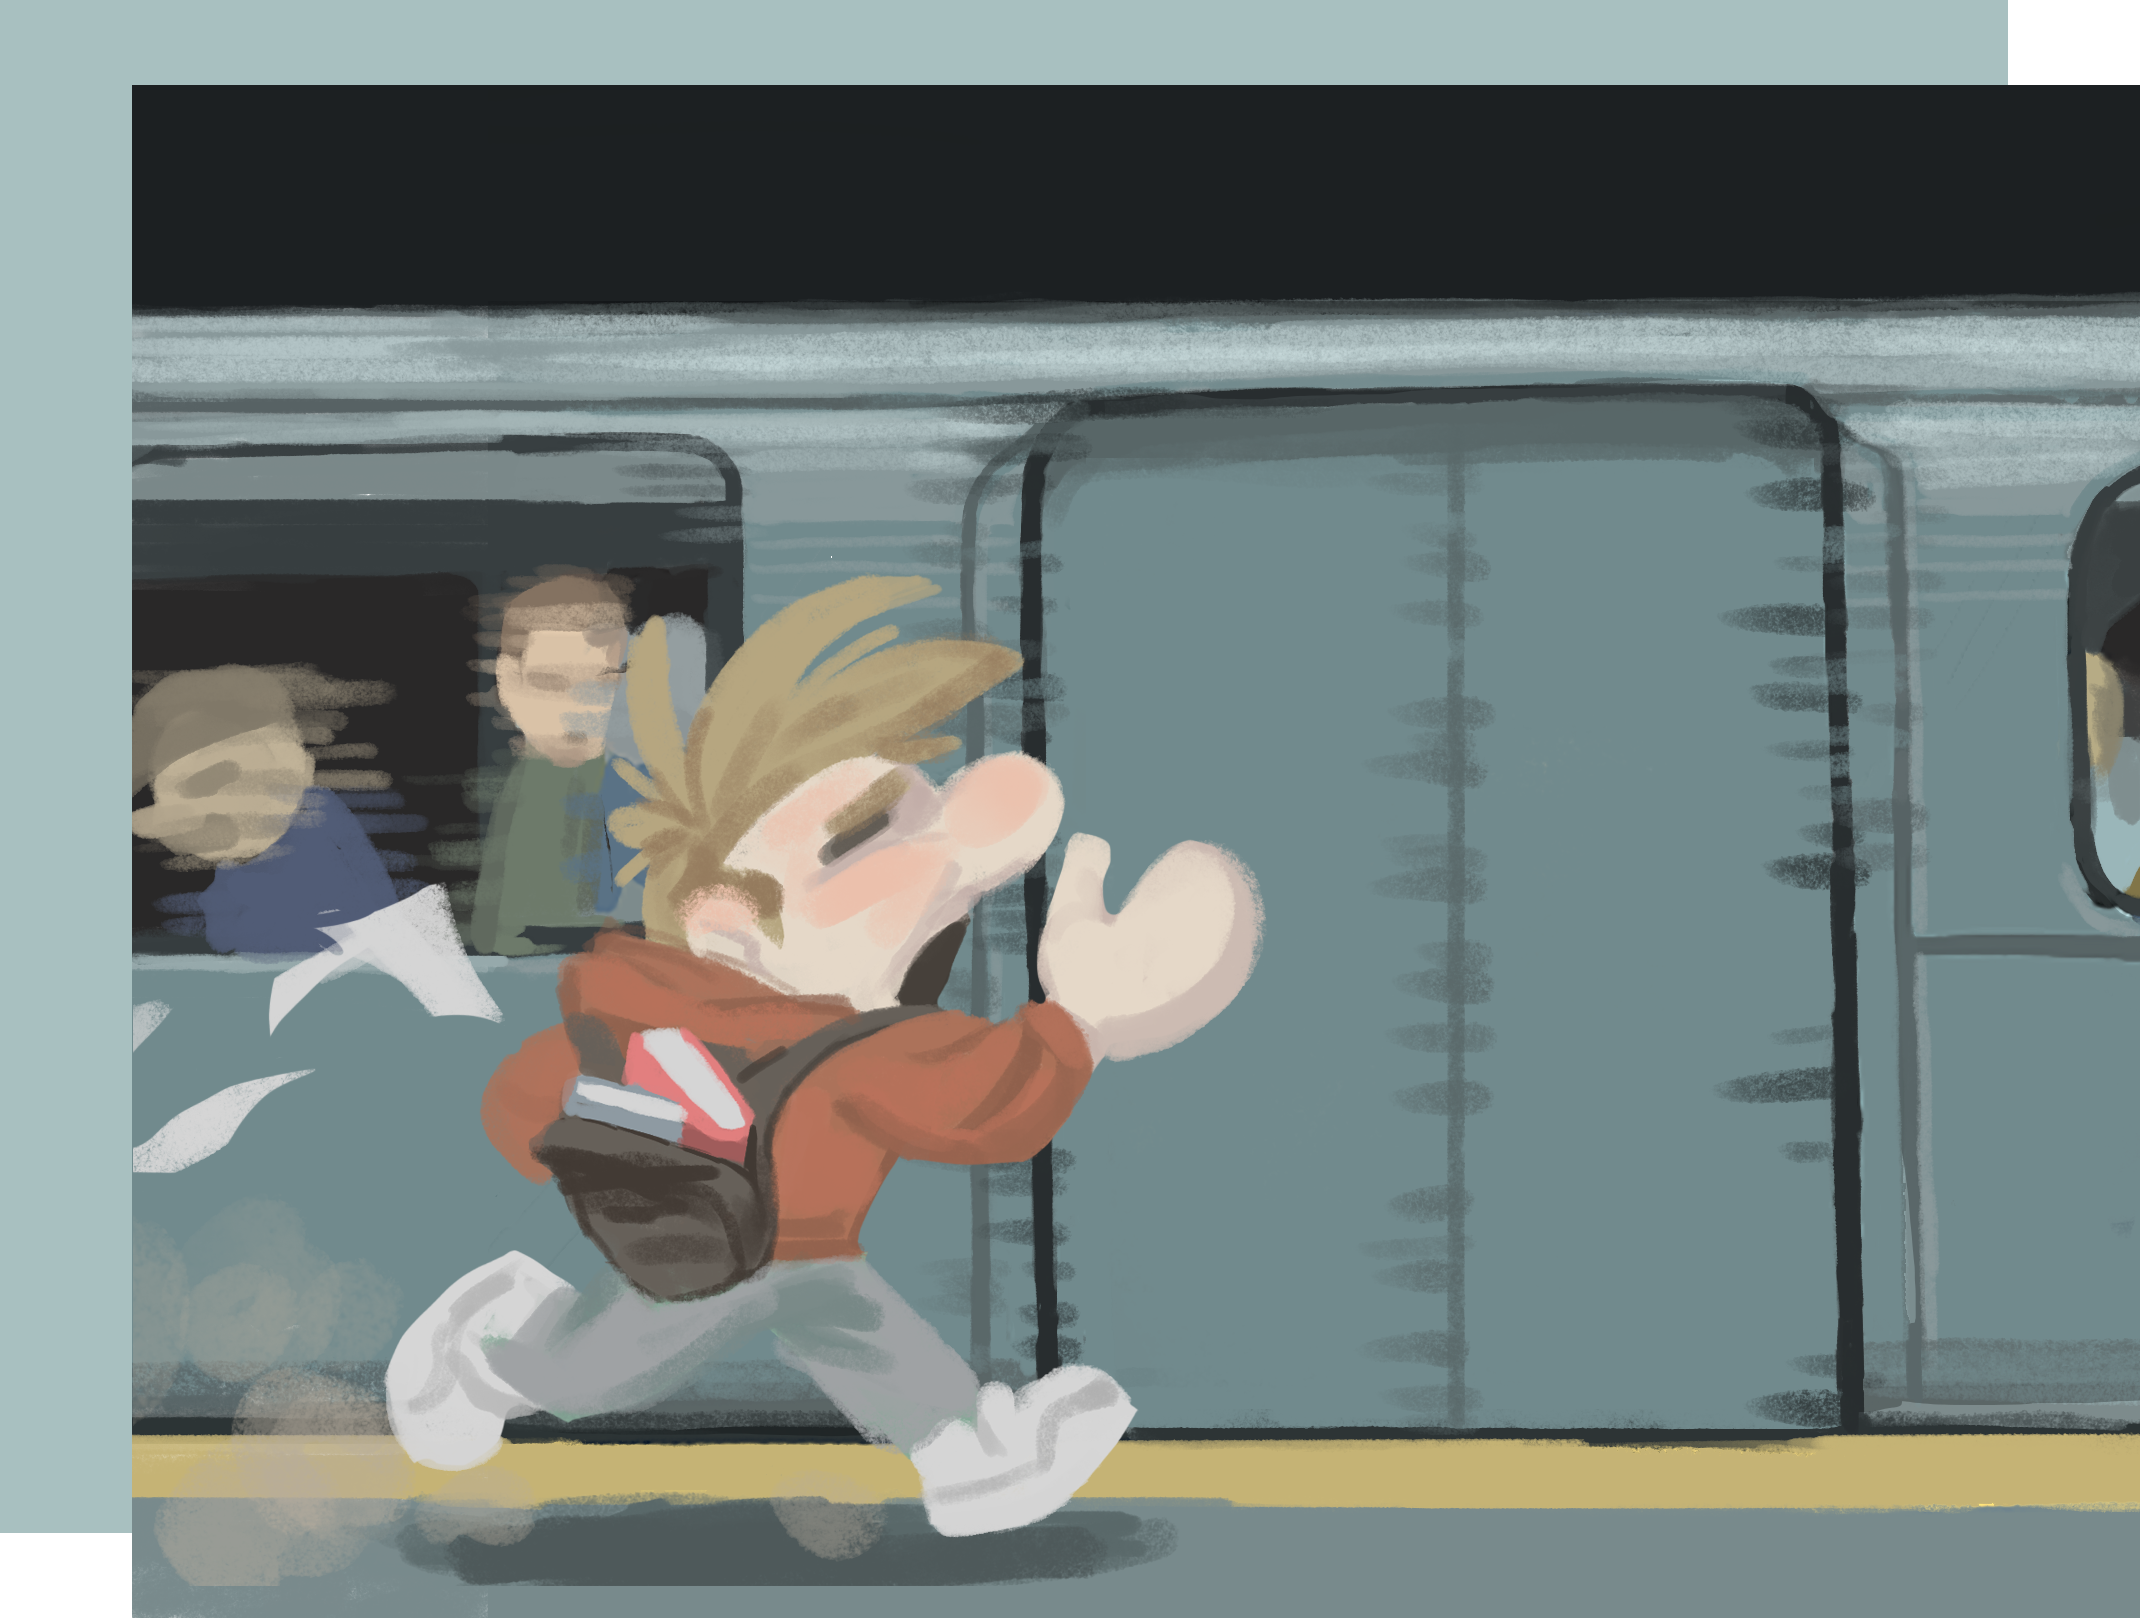 A guy running late to catch the train